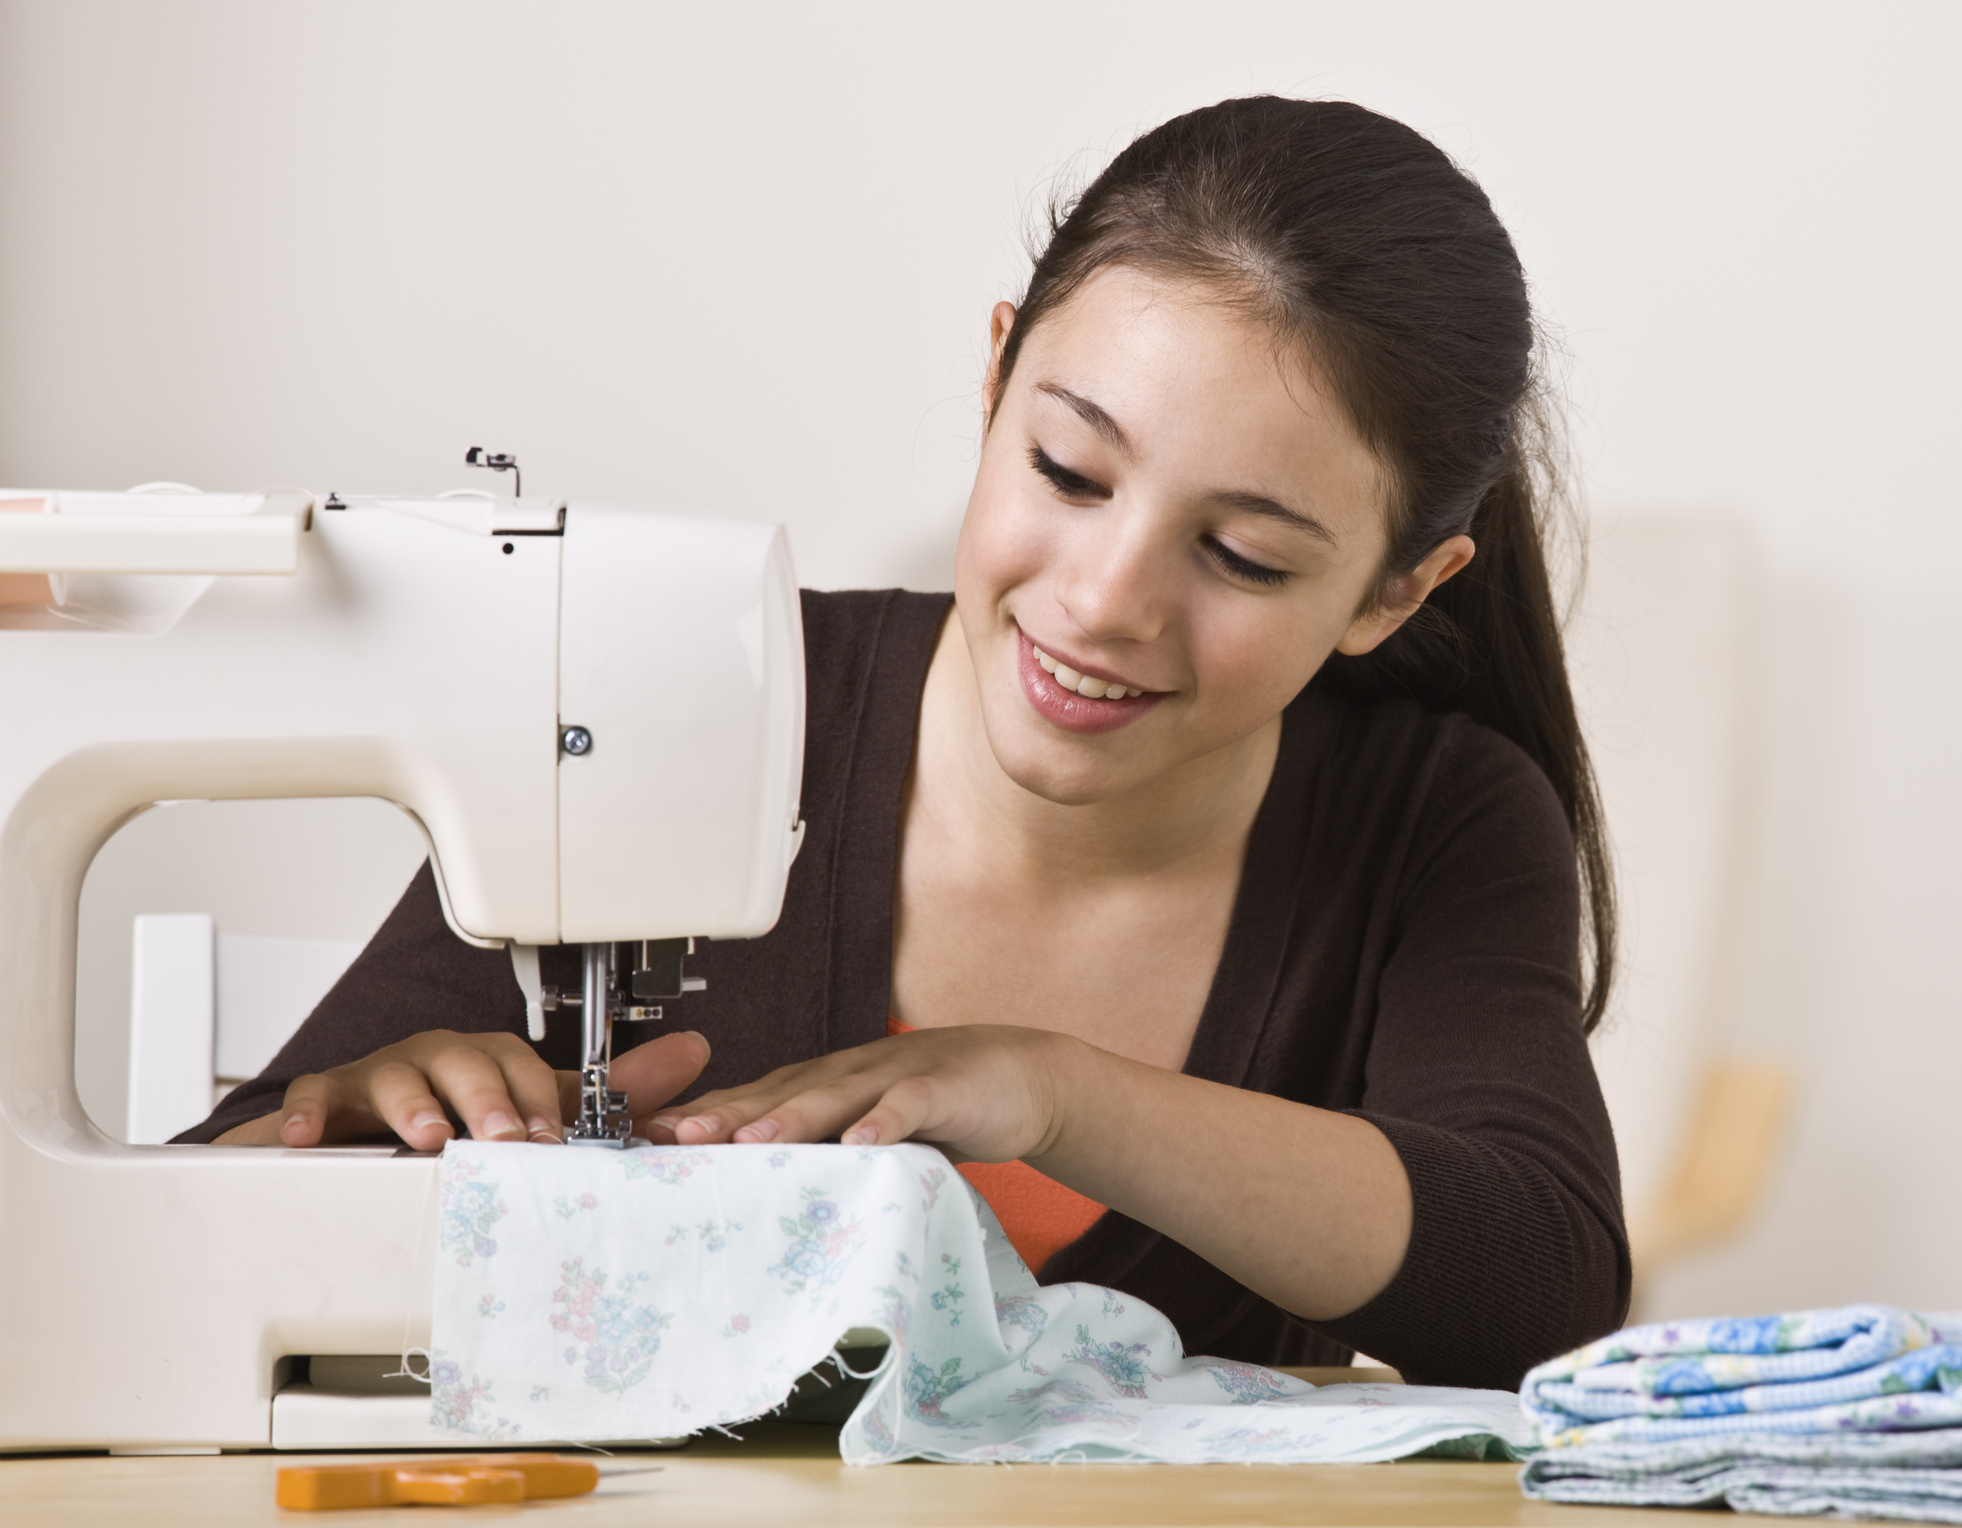 Best Sewing Machine for Home 2021